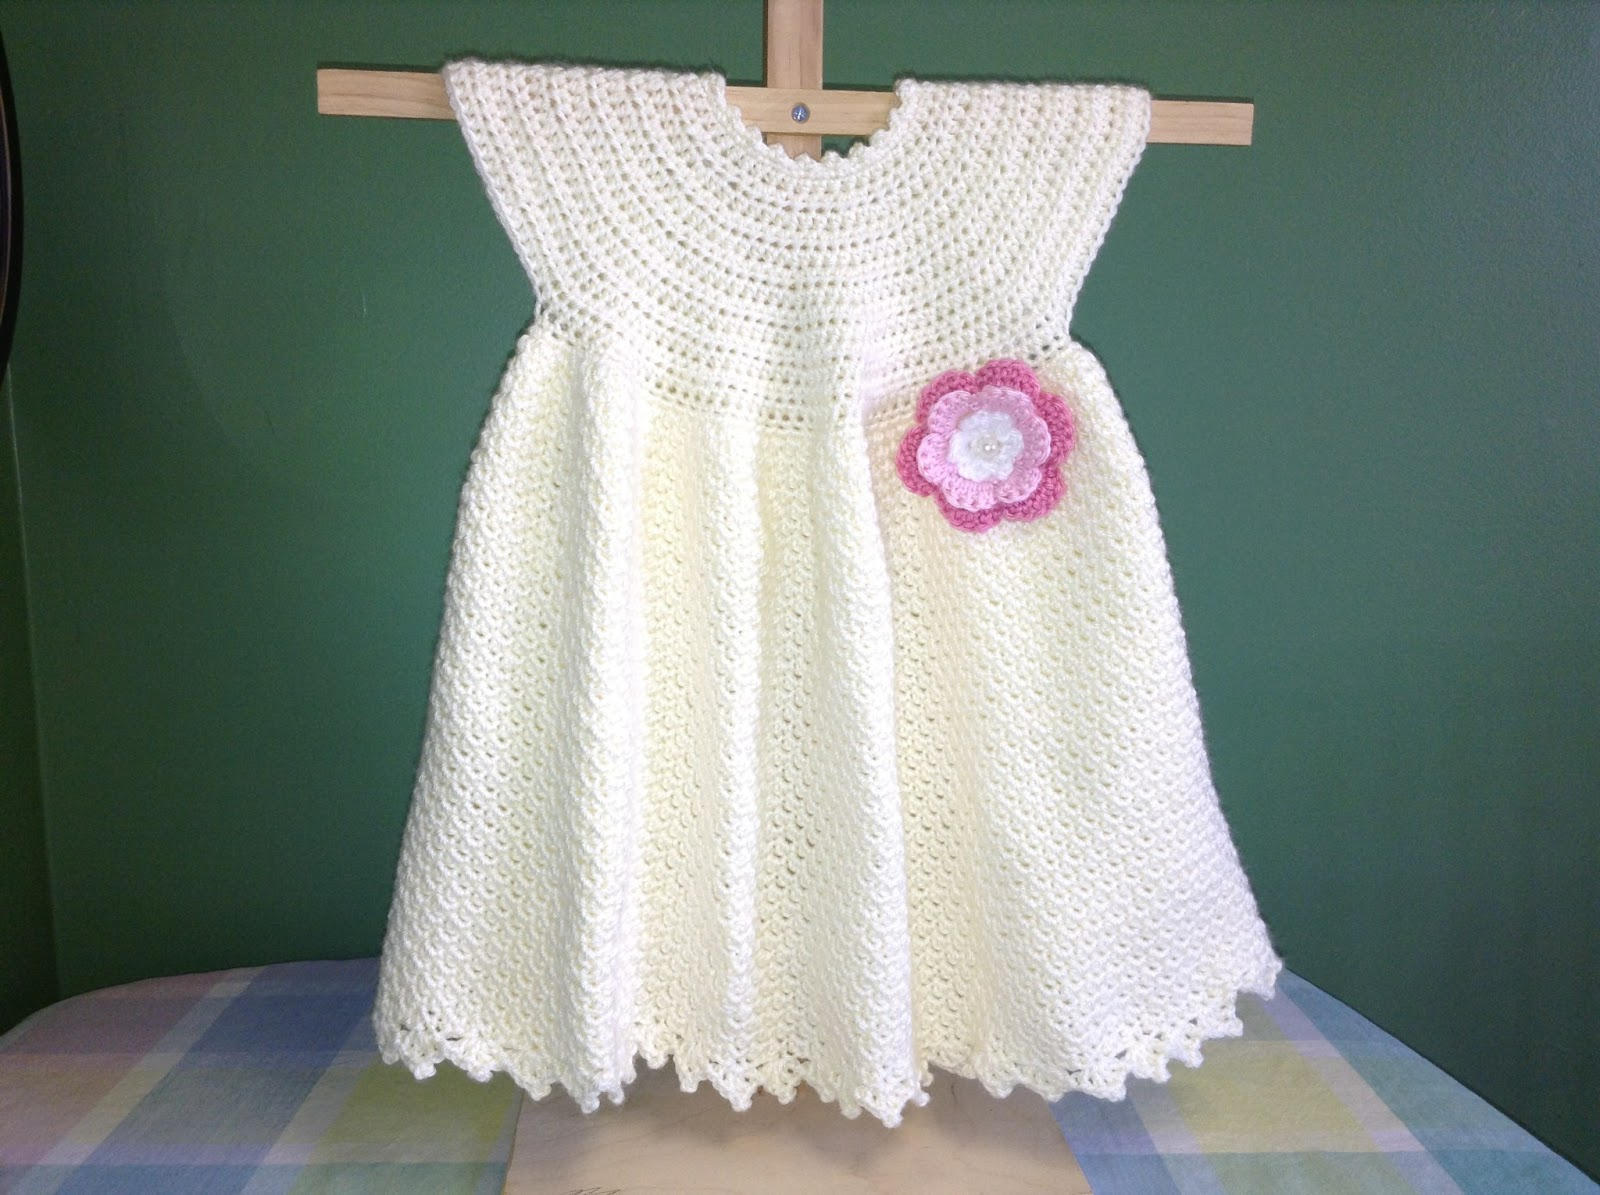 How To Crochet Baby Dress Pattern : Annas Free Baby Crochet Dress Patterns - Inspiration and ...